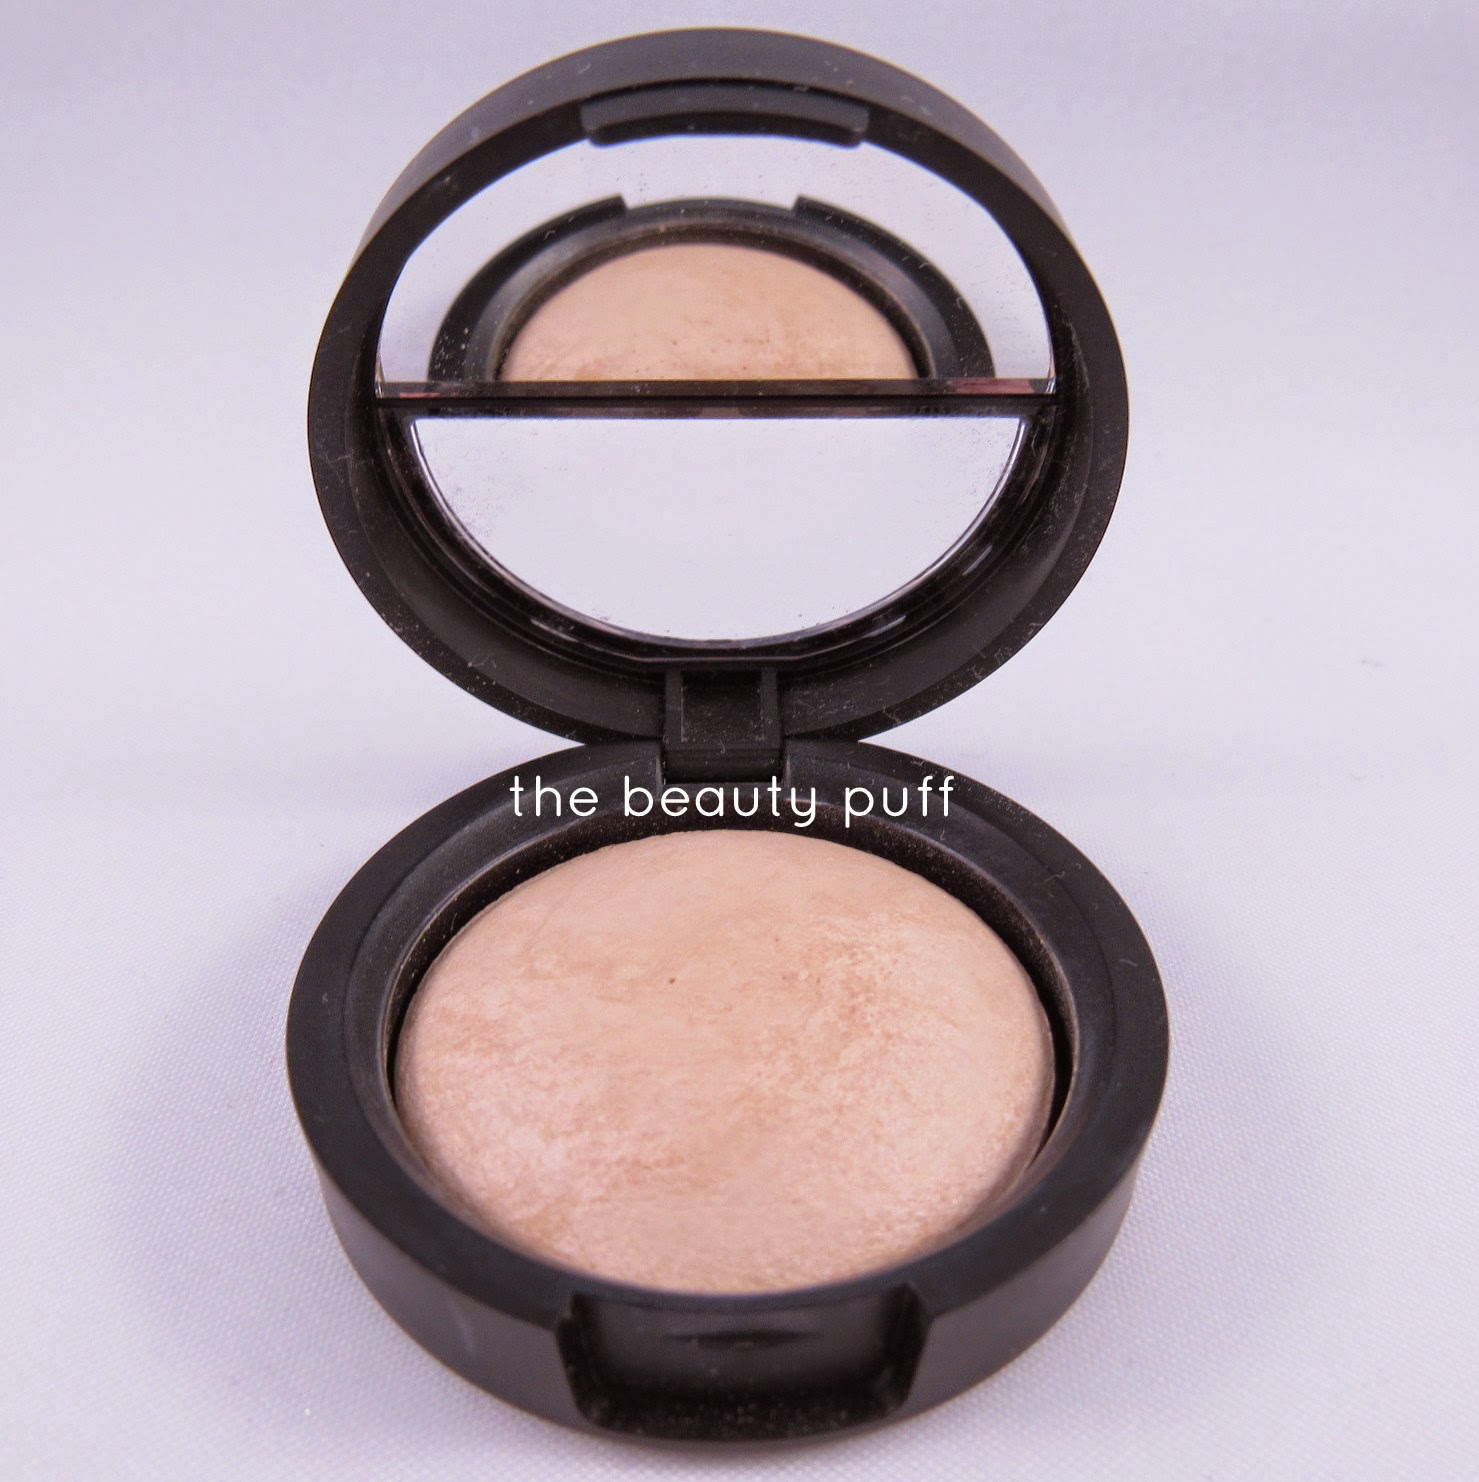 laura geller french vanilla highlight - the beauty puff